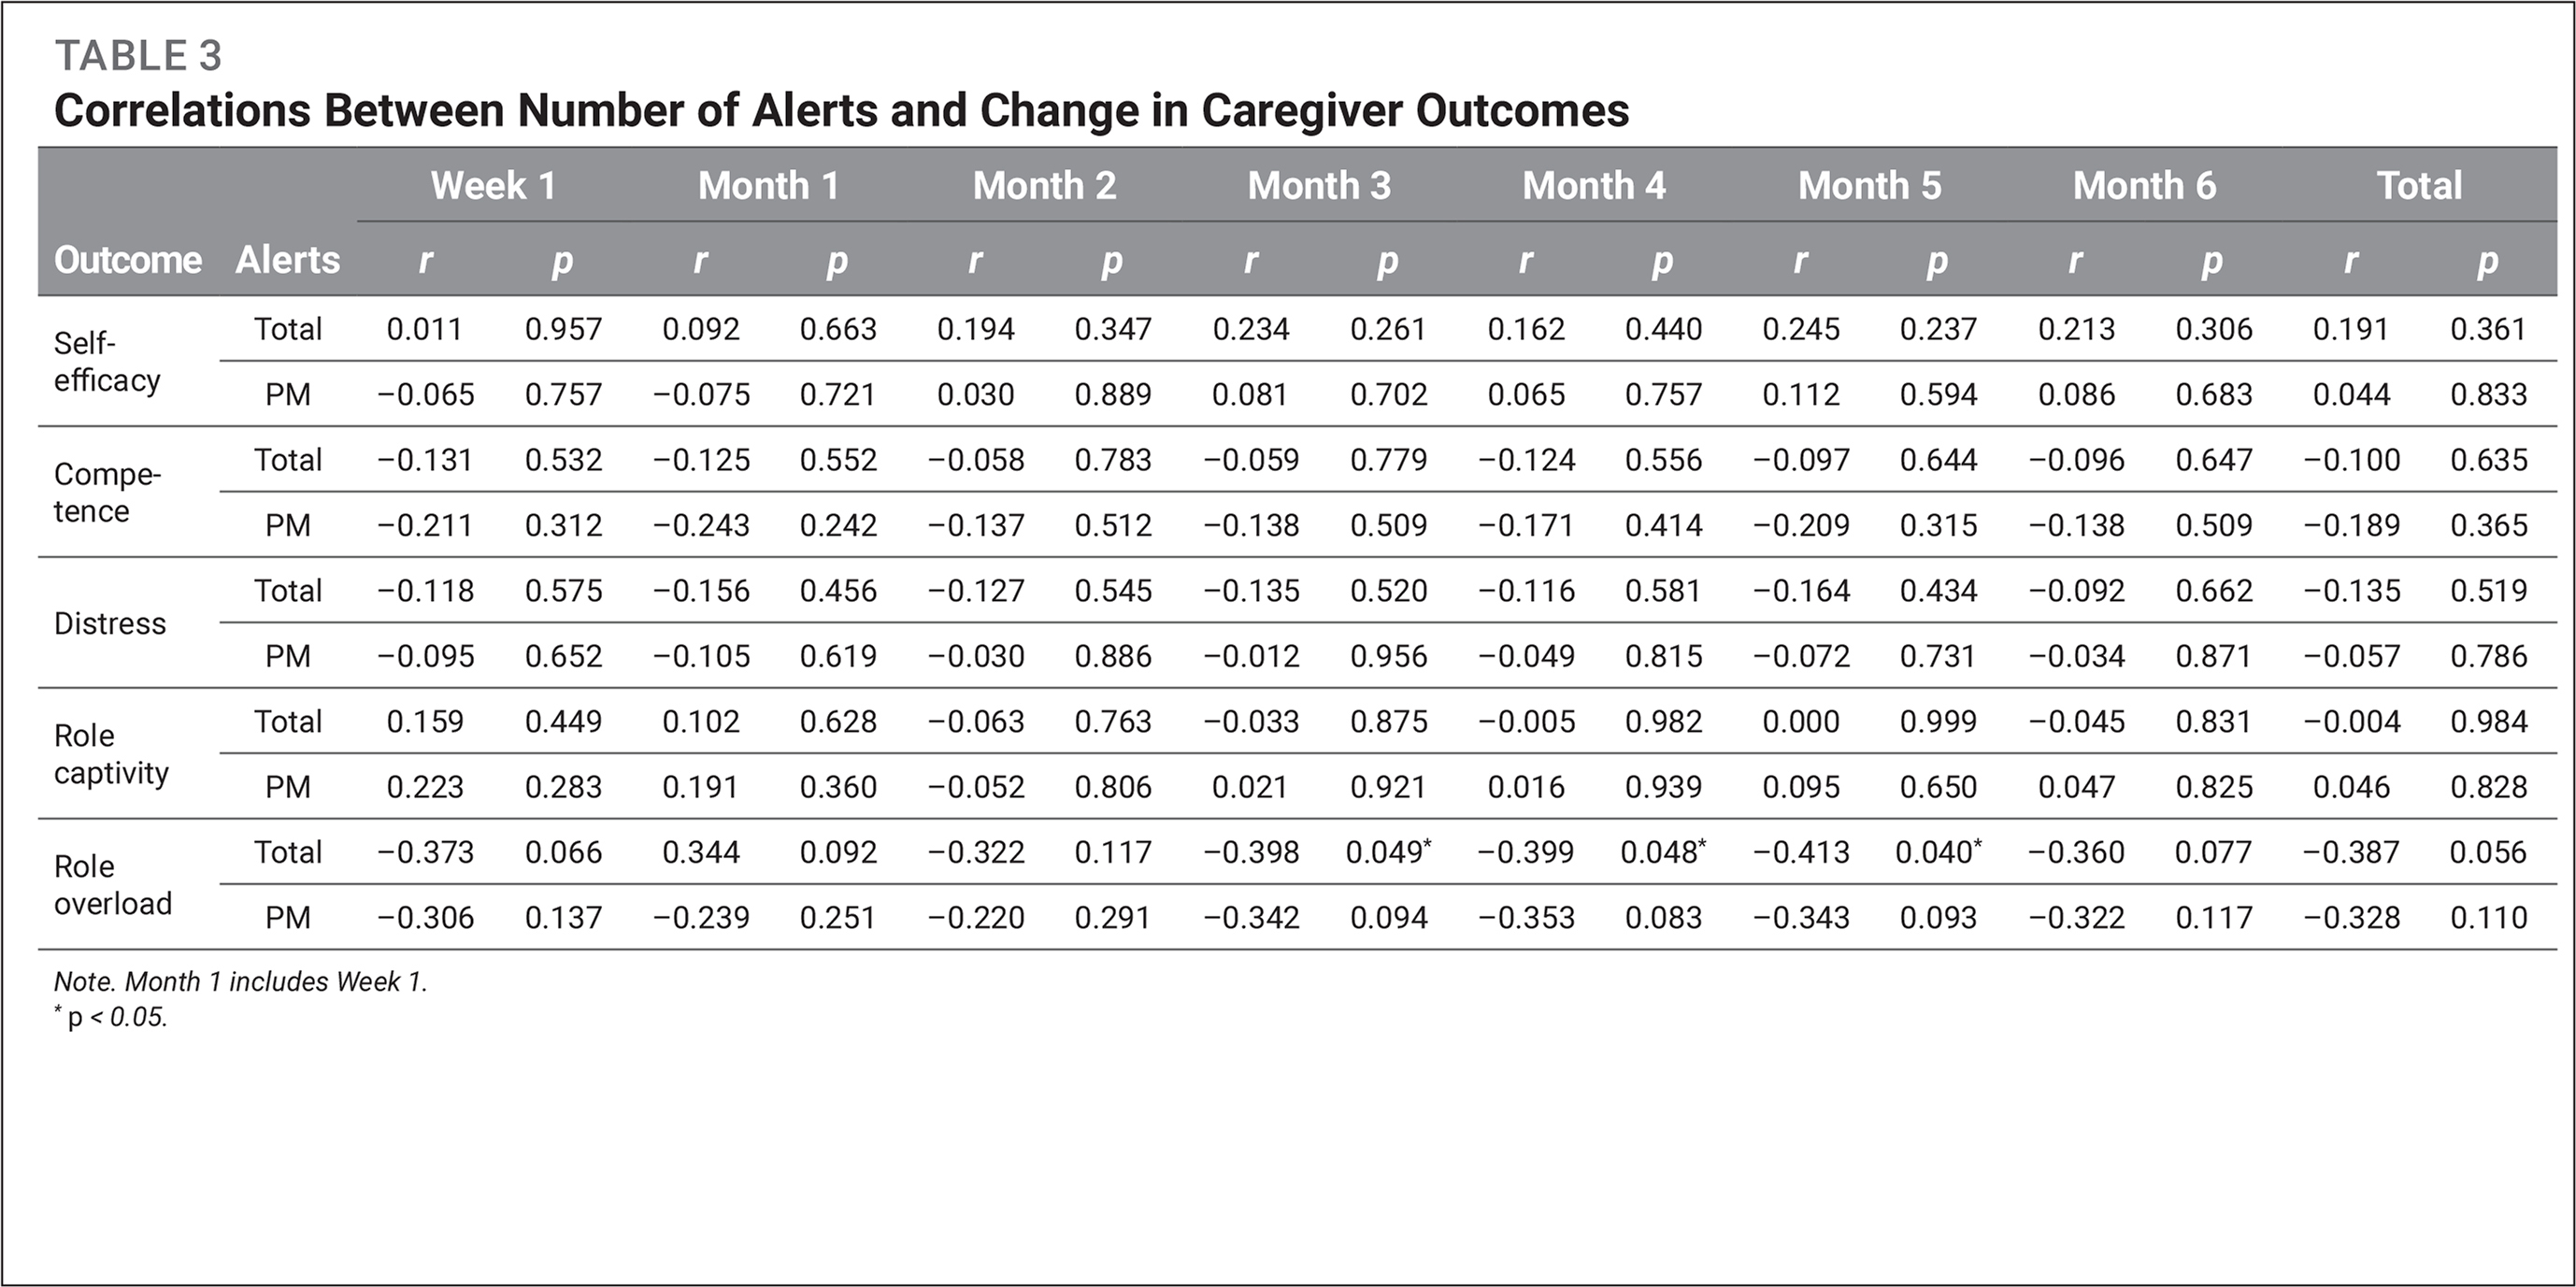 Correlations Between Number of Alerts and Change in Caregiver Outcomes